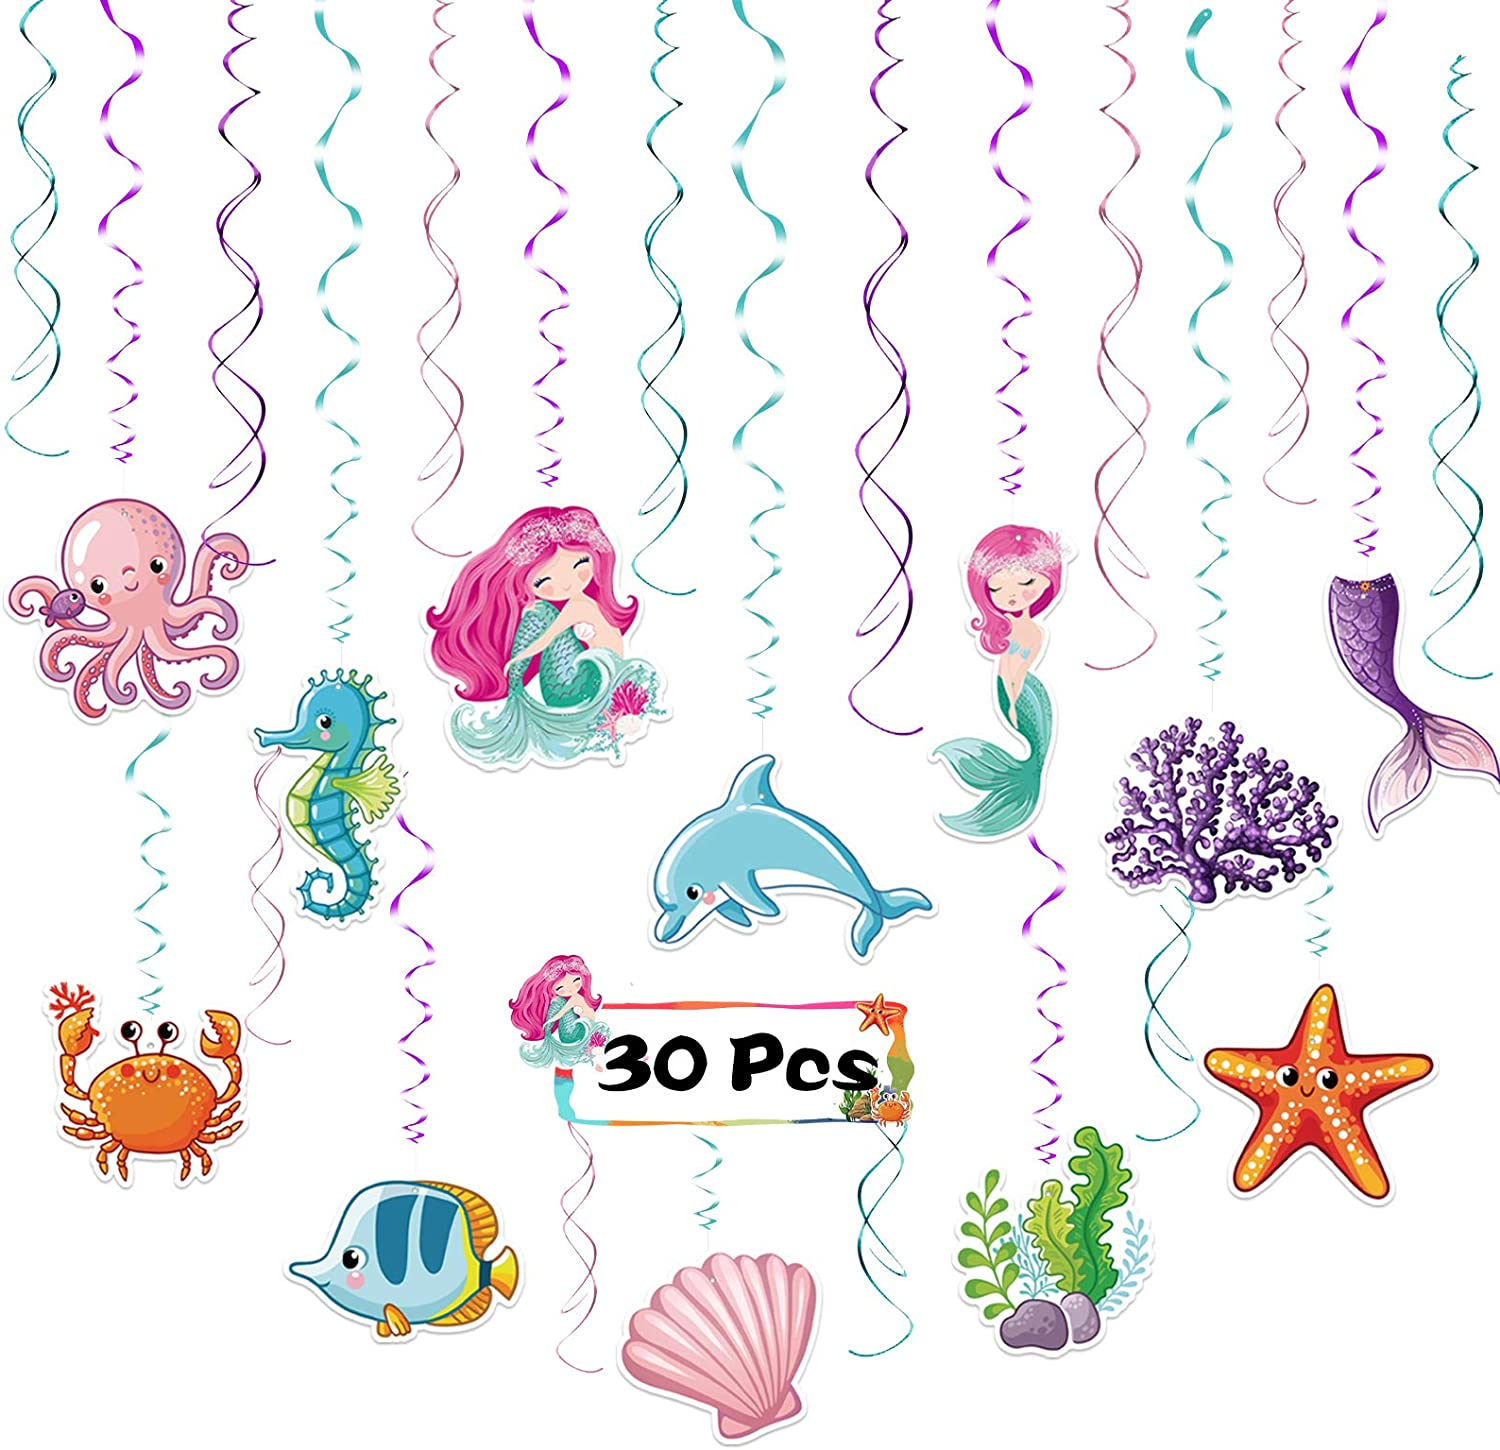 Mermaid Hanging Swirl, LANMOK 30pcs Under The Sea Party Decorations Tropical Ocean Ceiling Streamer Mermaid Shape Dangling Decor for Kids Girls Sea Themed Baby Shower Party Decor